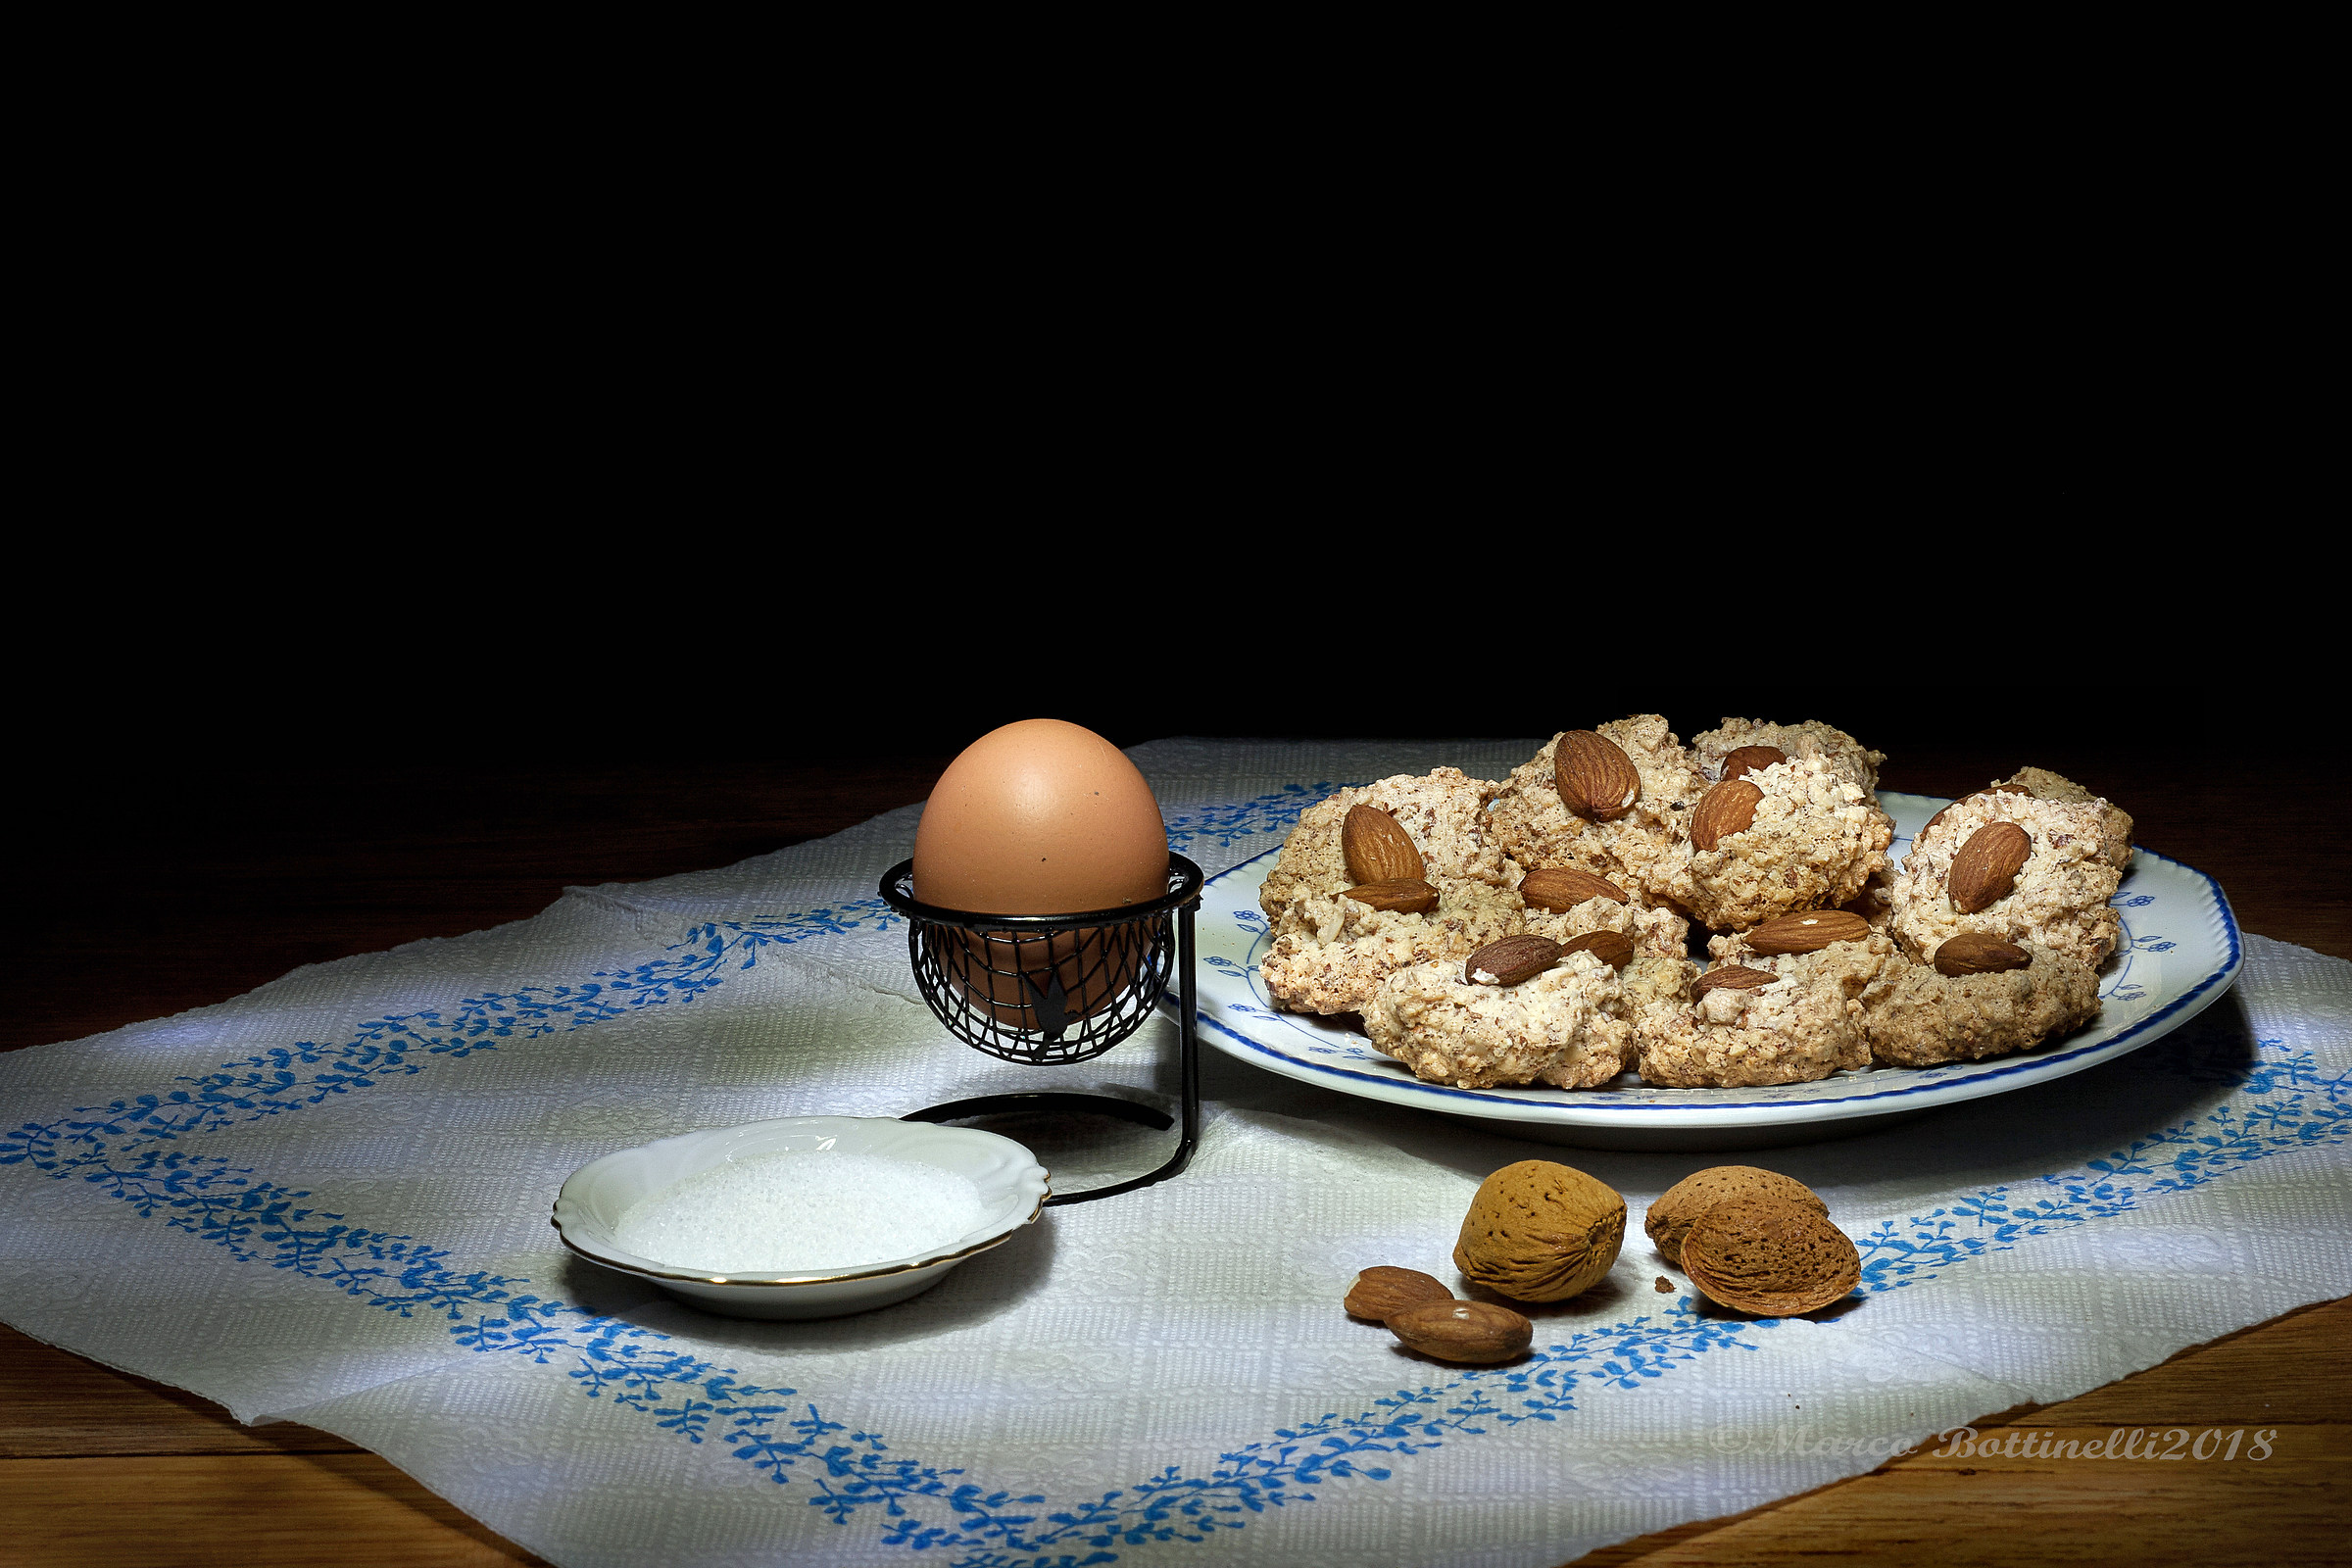 Simple foods for bad but good cookies ........